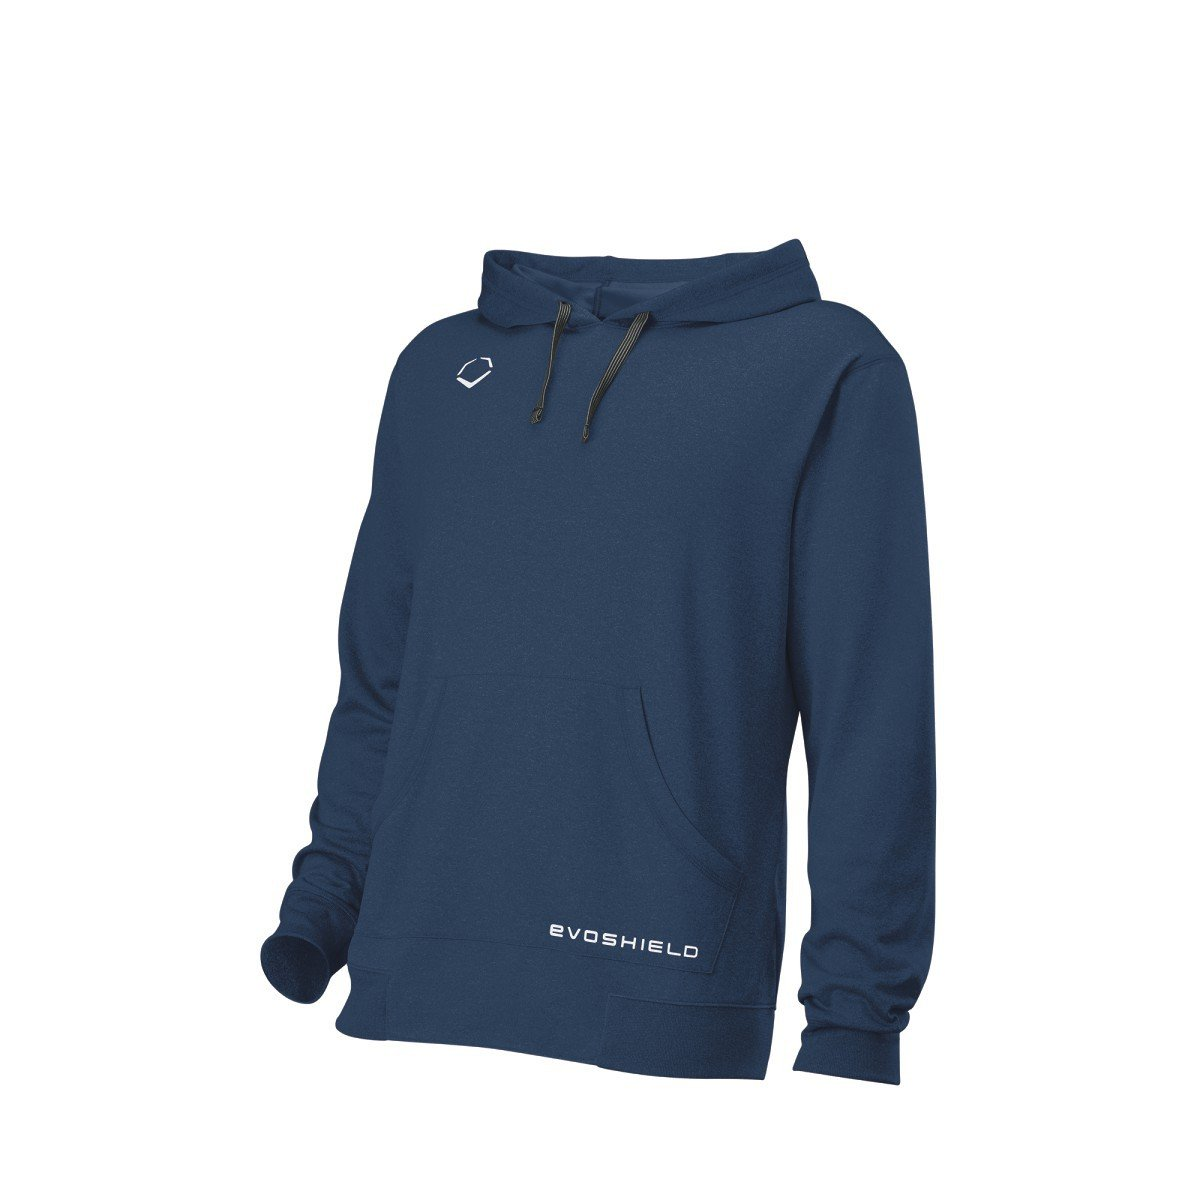 EvoShield Boy's Pro Team Hoodie - Youth, Navy, Youth Large